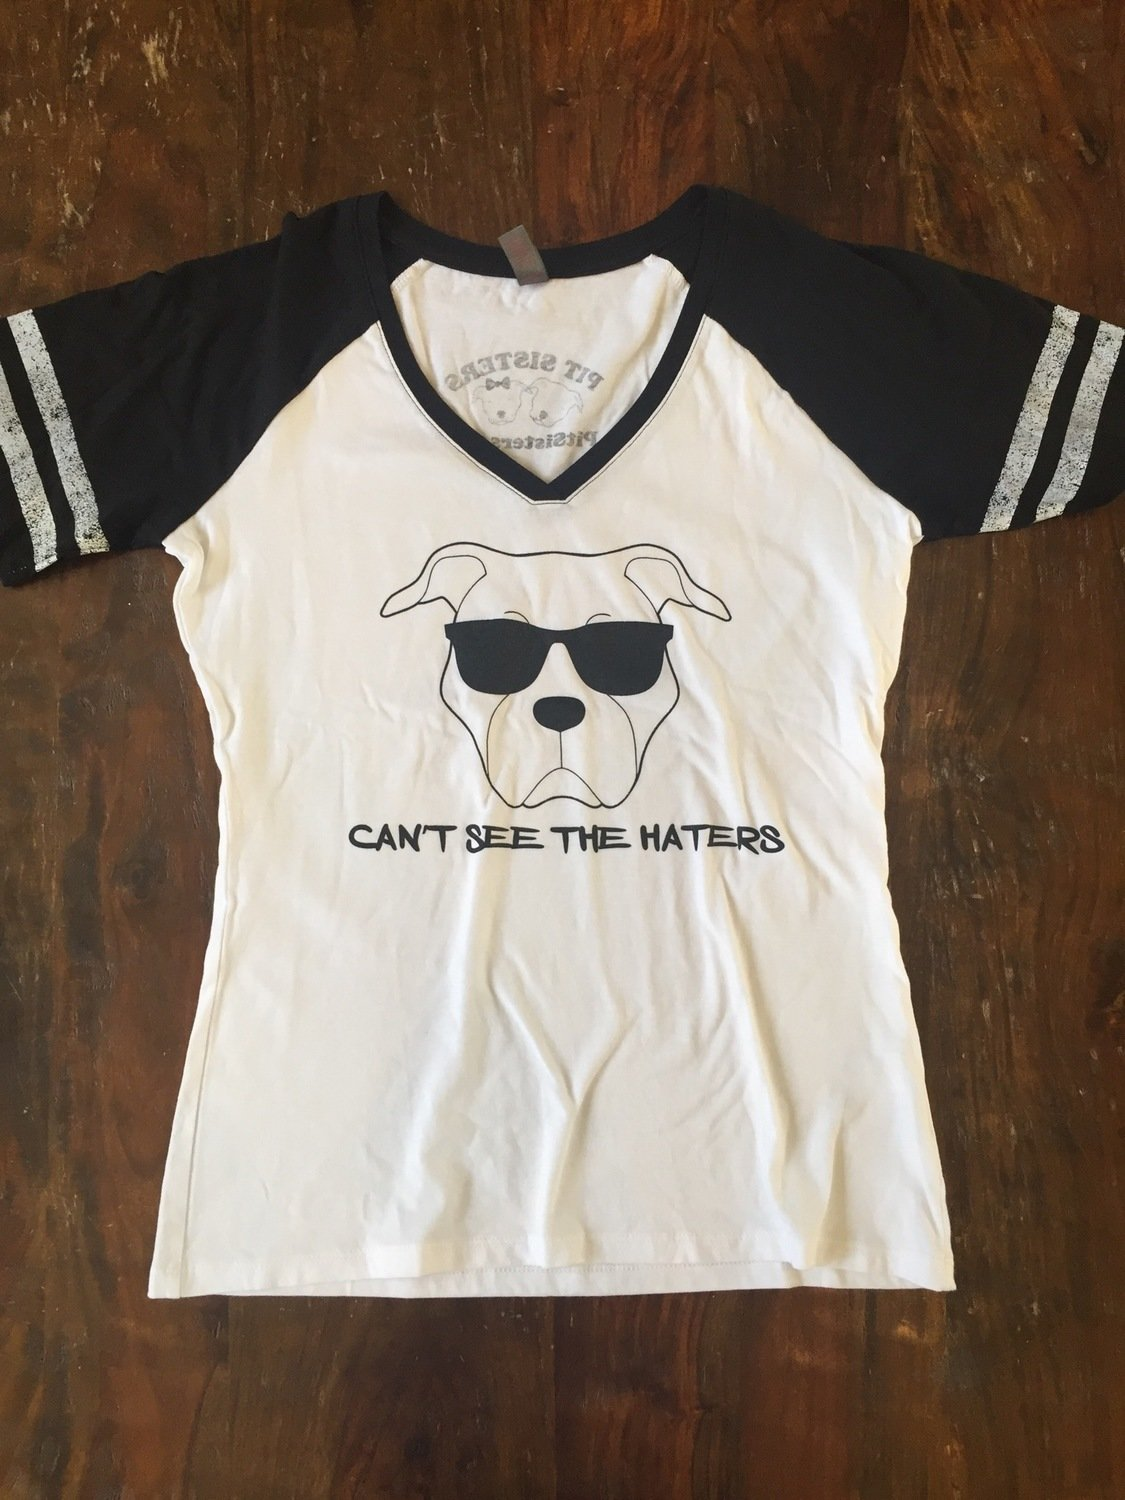 Ladies Vneck- Can't See the Haters- White and Black with Black writing - Large